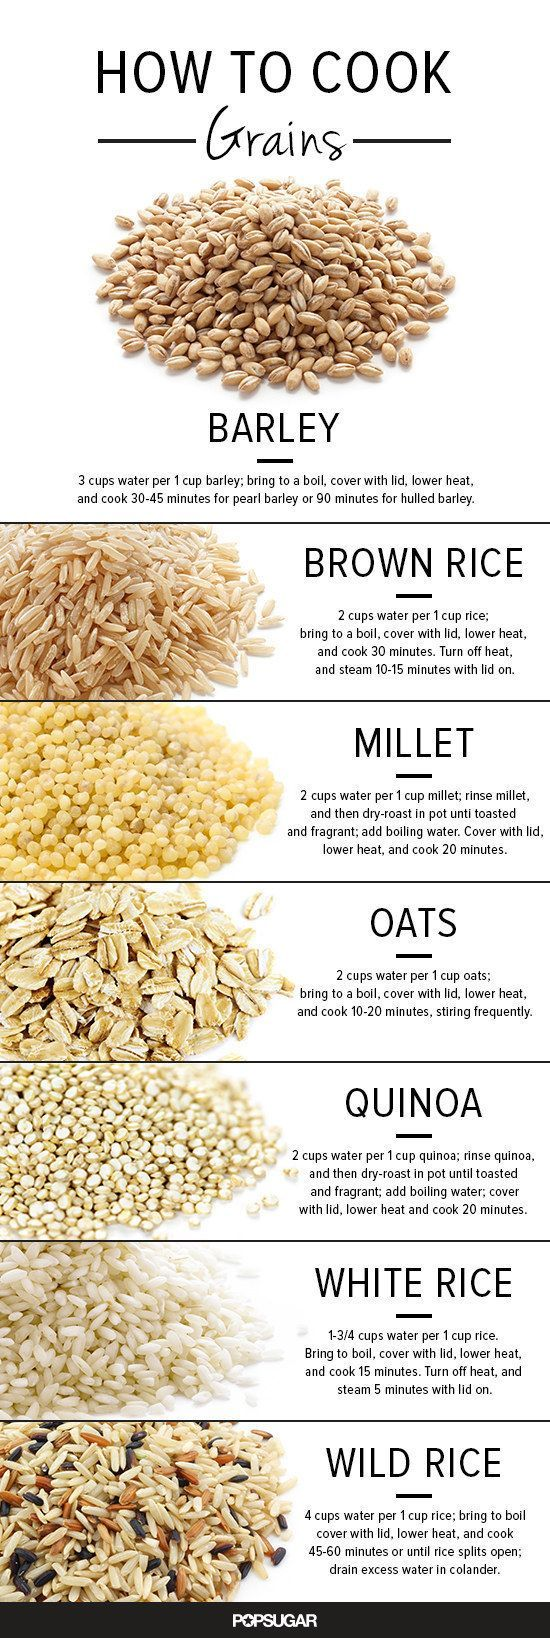 For getting perfect grains every time: | 17 Useful Cheat Sheets Everyone Should Keep In Their Kitchen